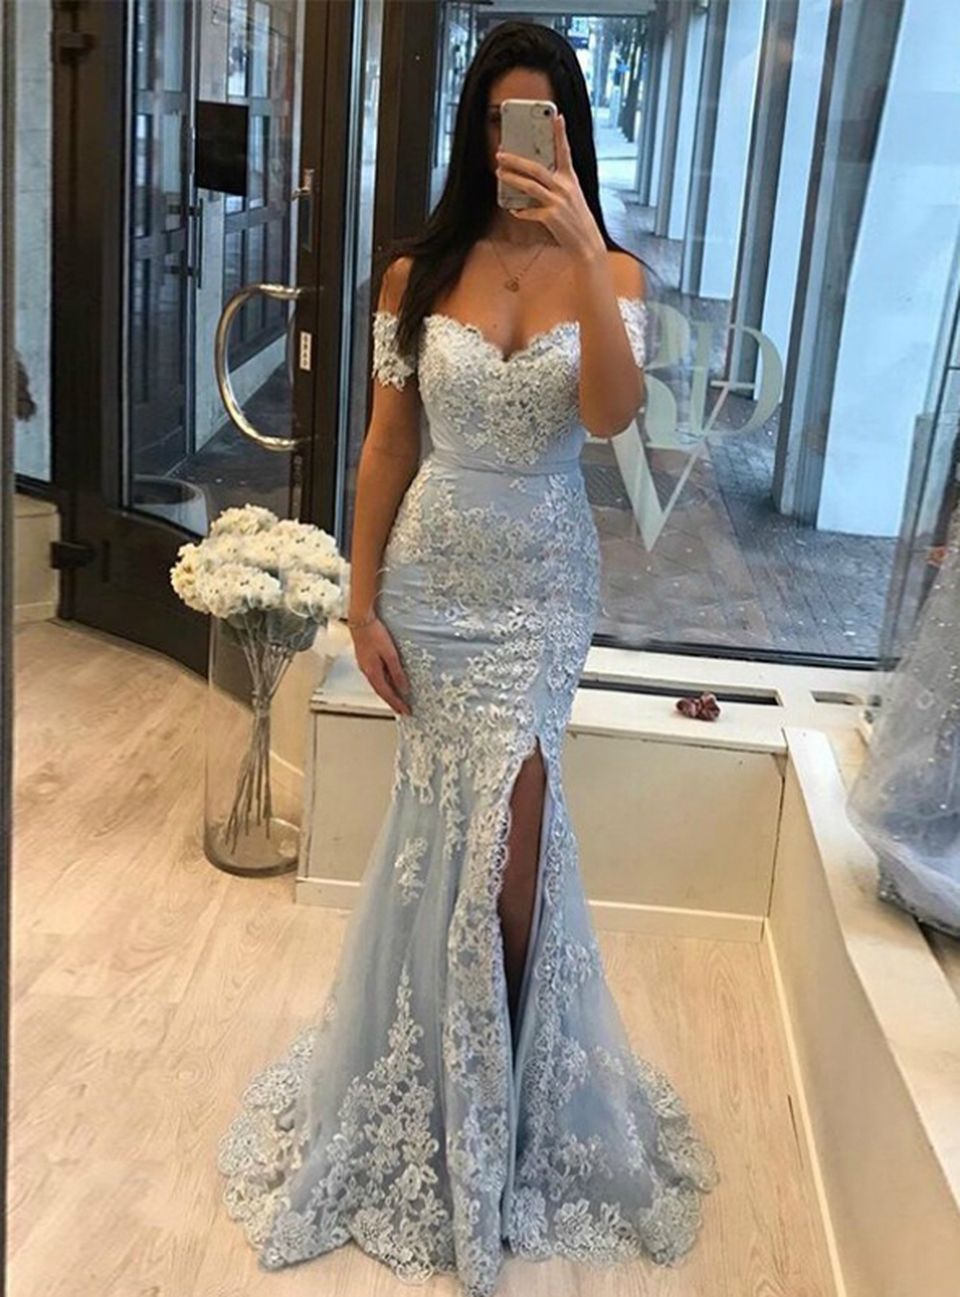 Light Blue Mermaid Tulle Appliques Off The Shoulder Prom Dress Prom Dresses Blue Prom Dresses Lace Prom Outfits [ 1297 x 960 Pixel ]